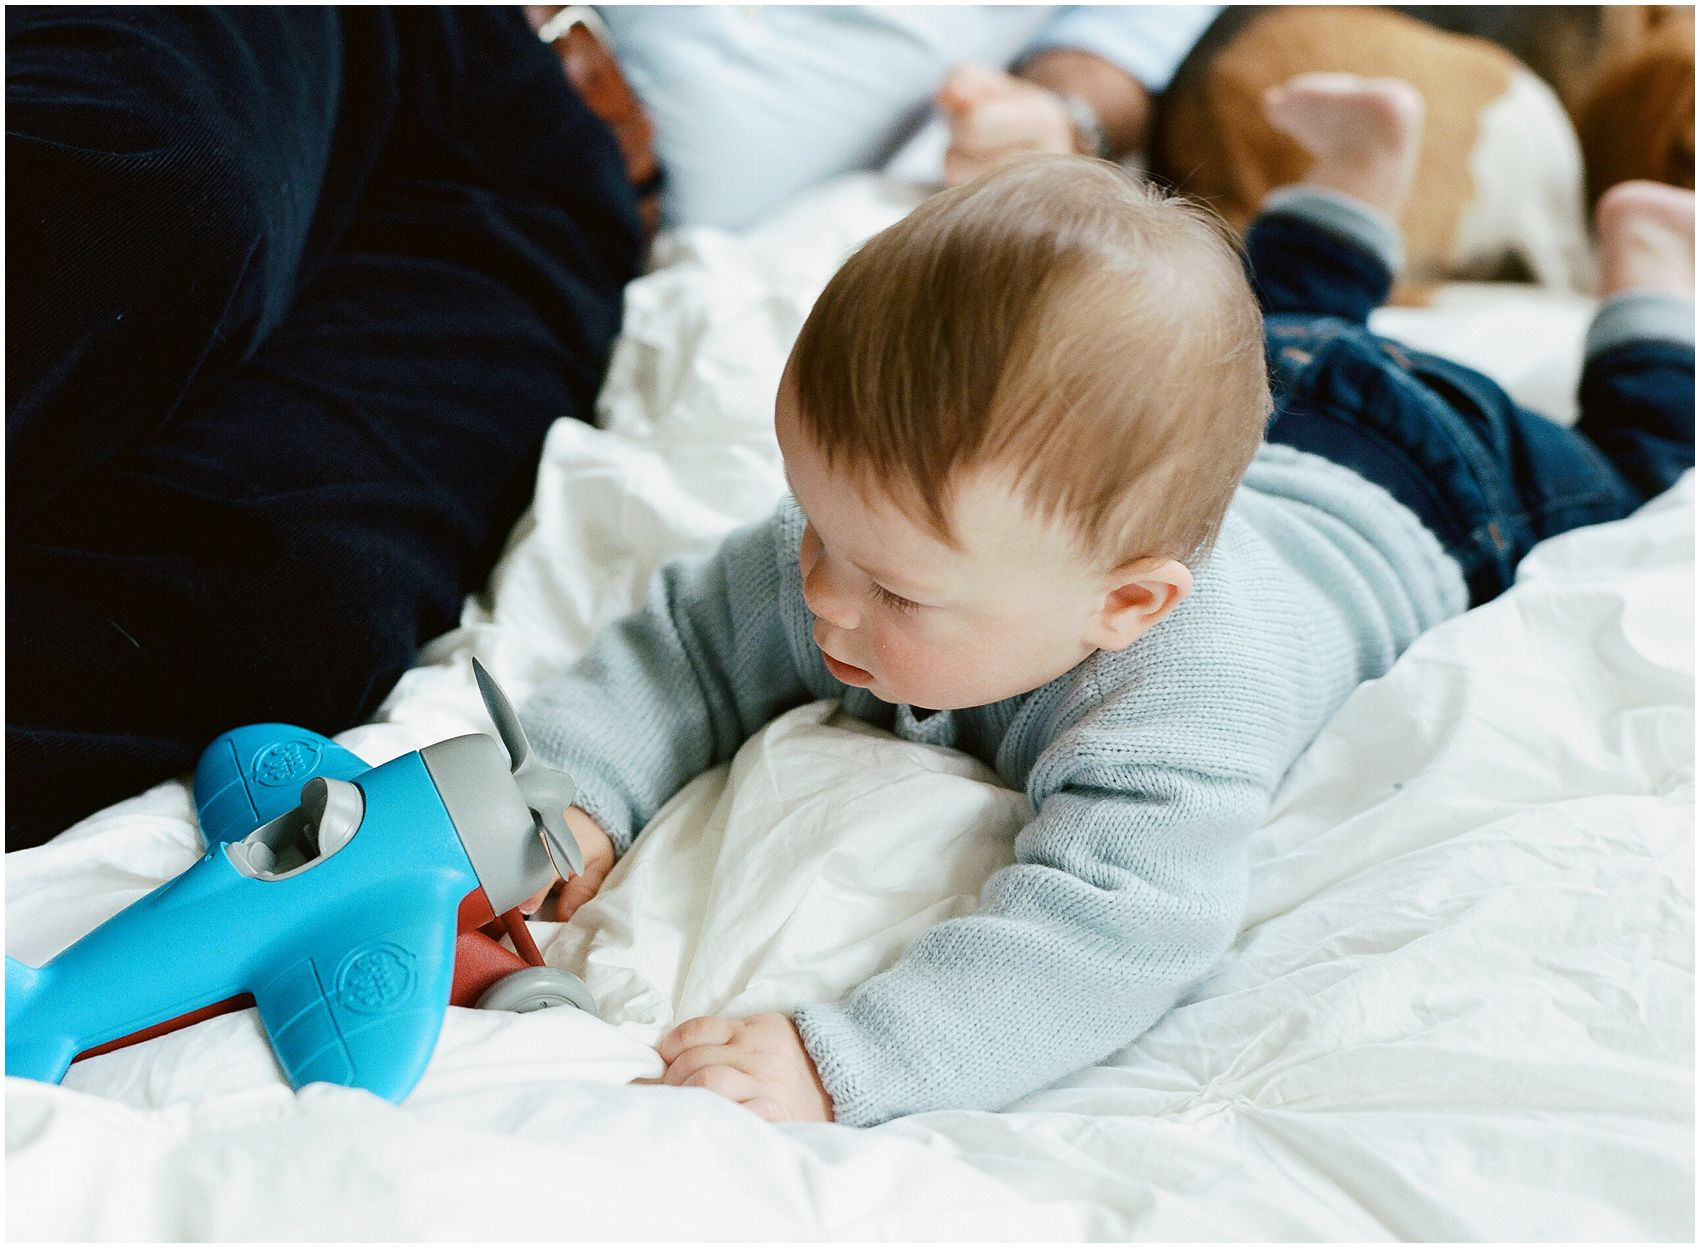 baby with the airplane toy